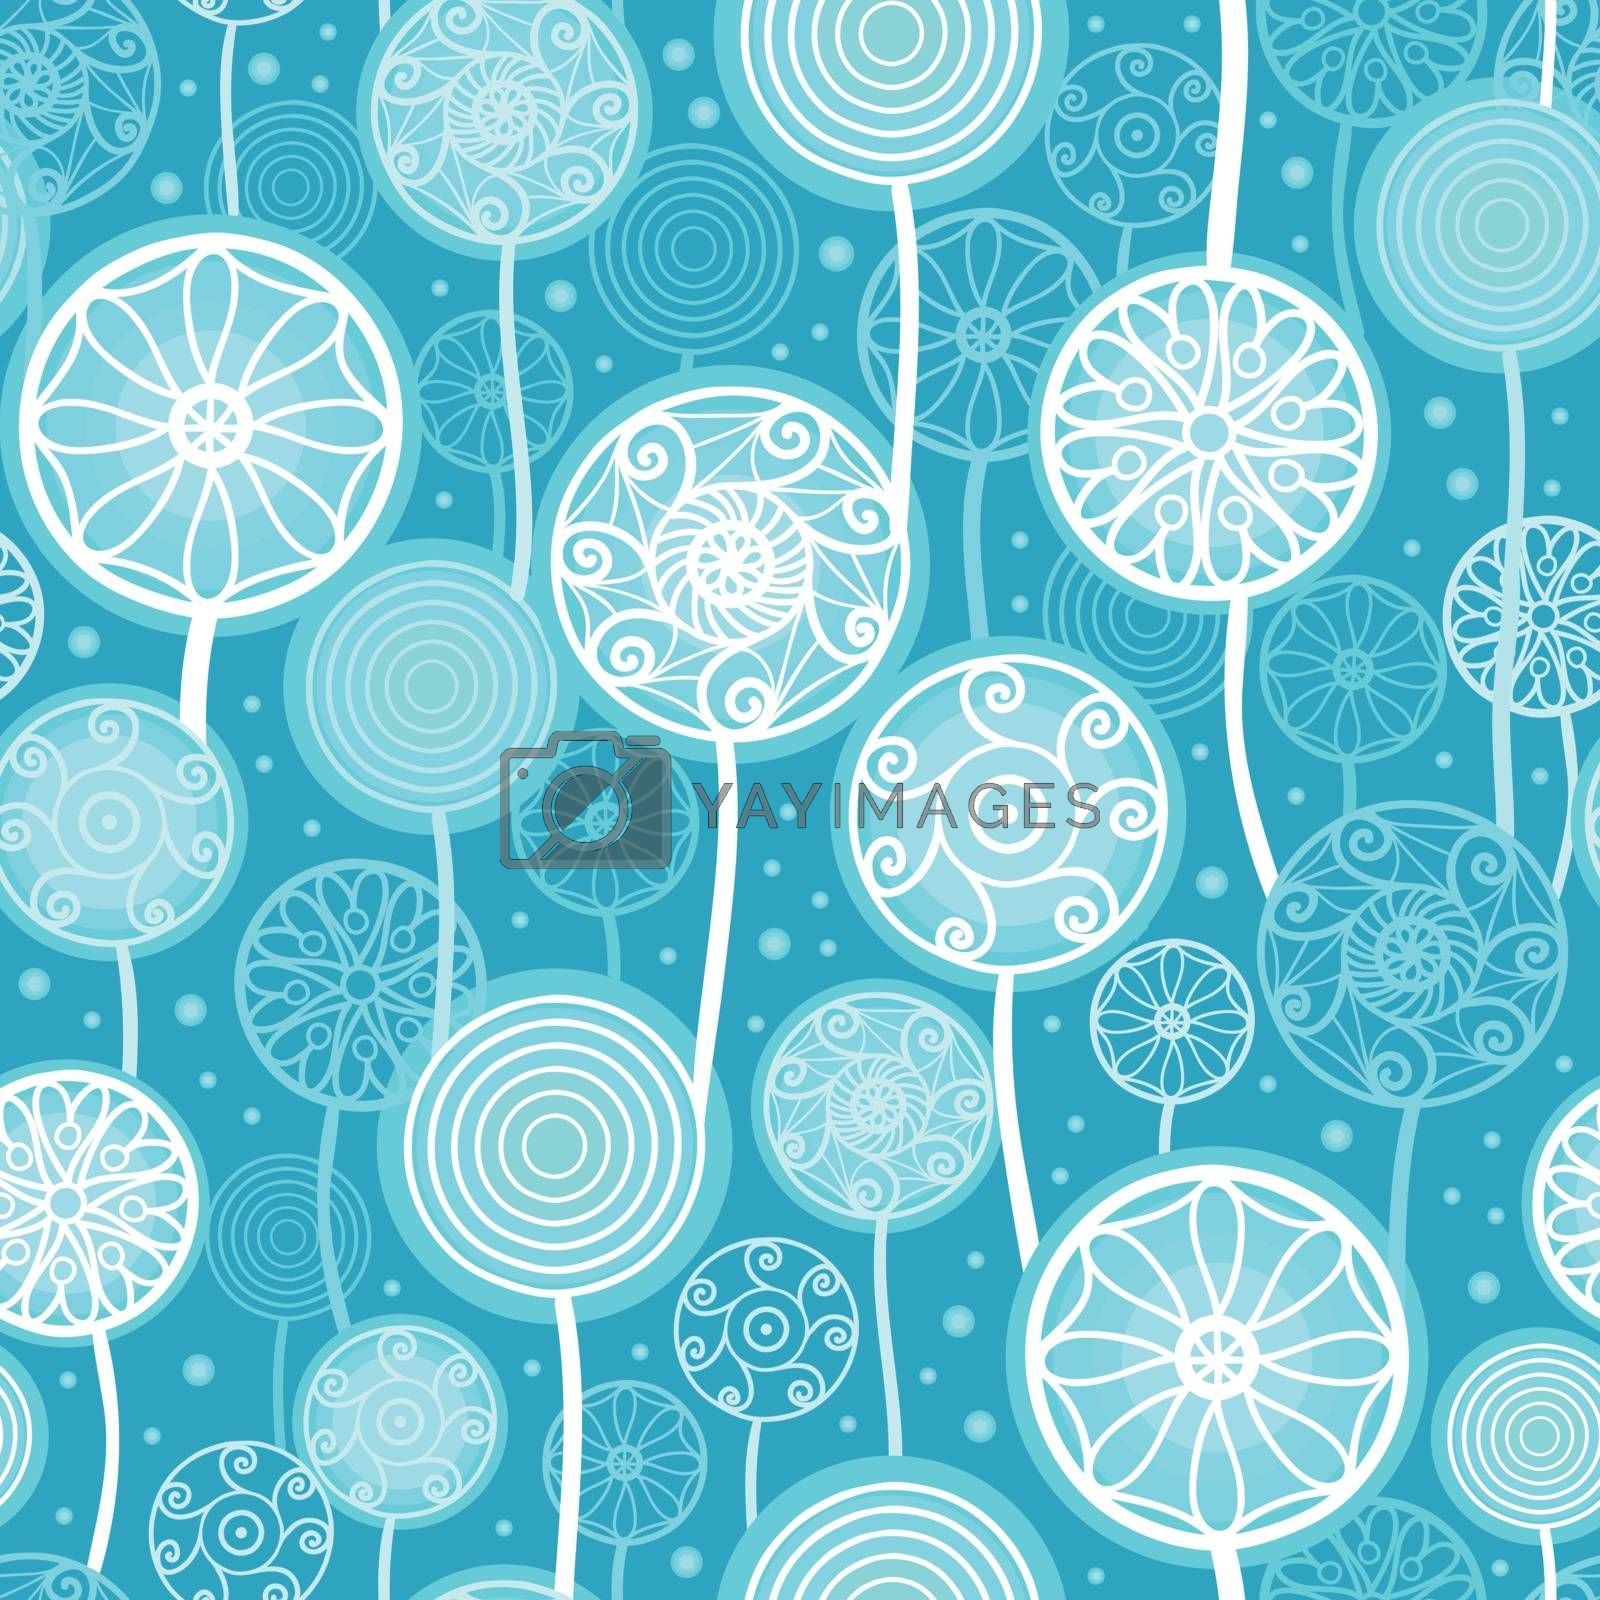 Vector Abstract Dandelion Plants Seamless Pattern Background with hand drawn, oval decorative shapes on blue background.